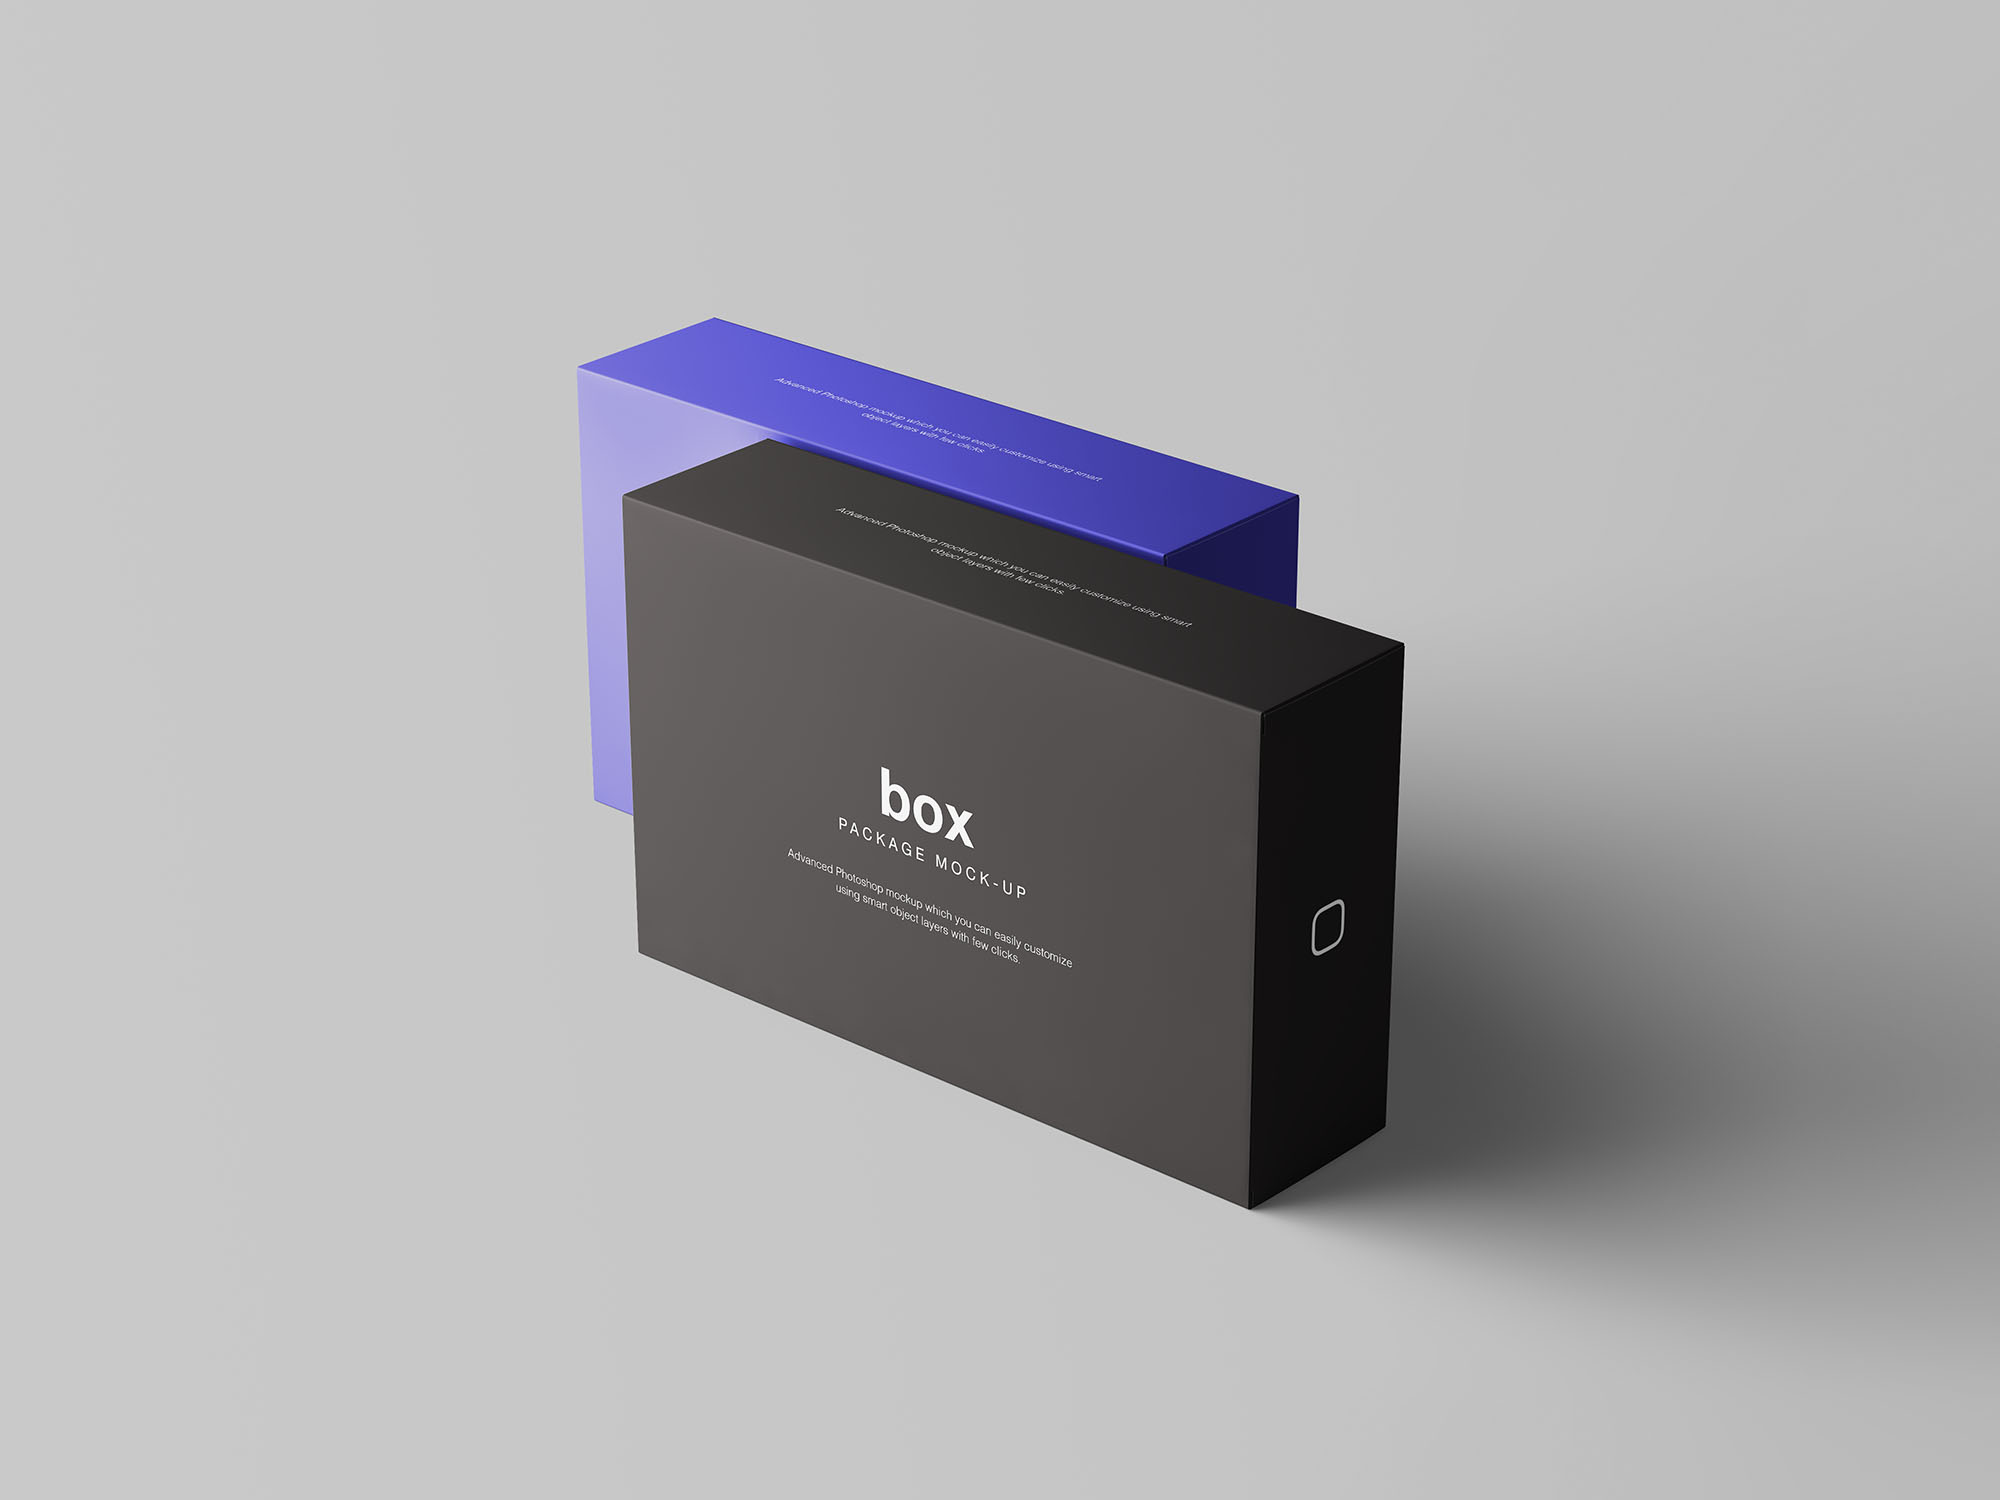 Box Packaging Mockup 3